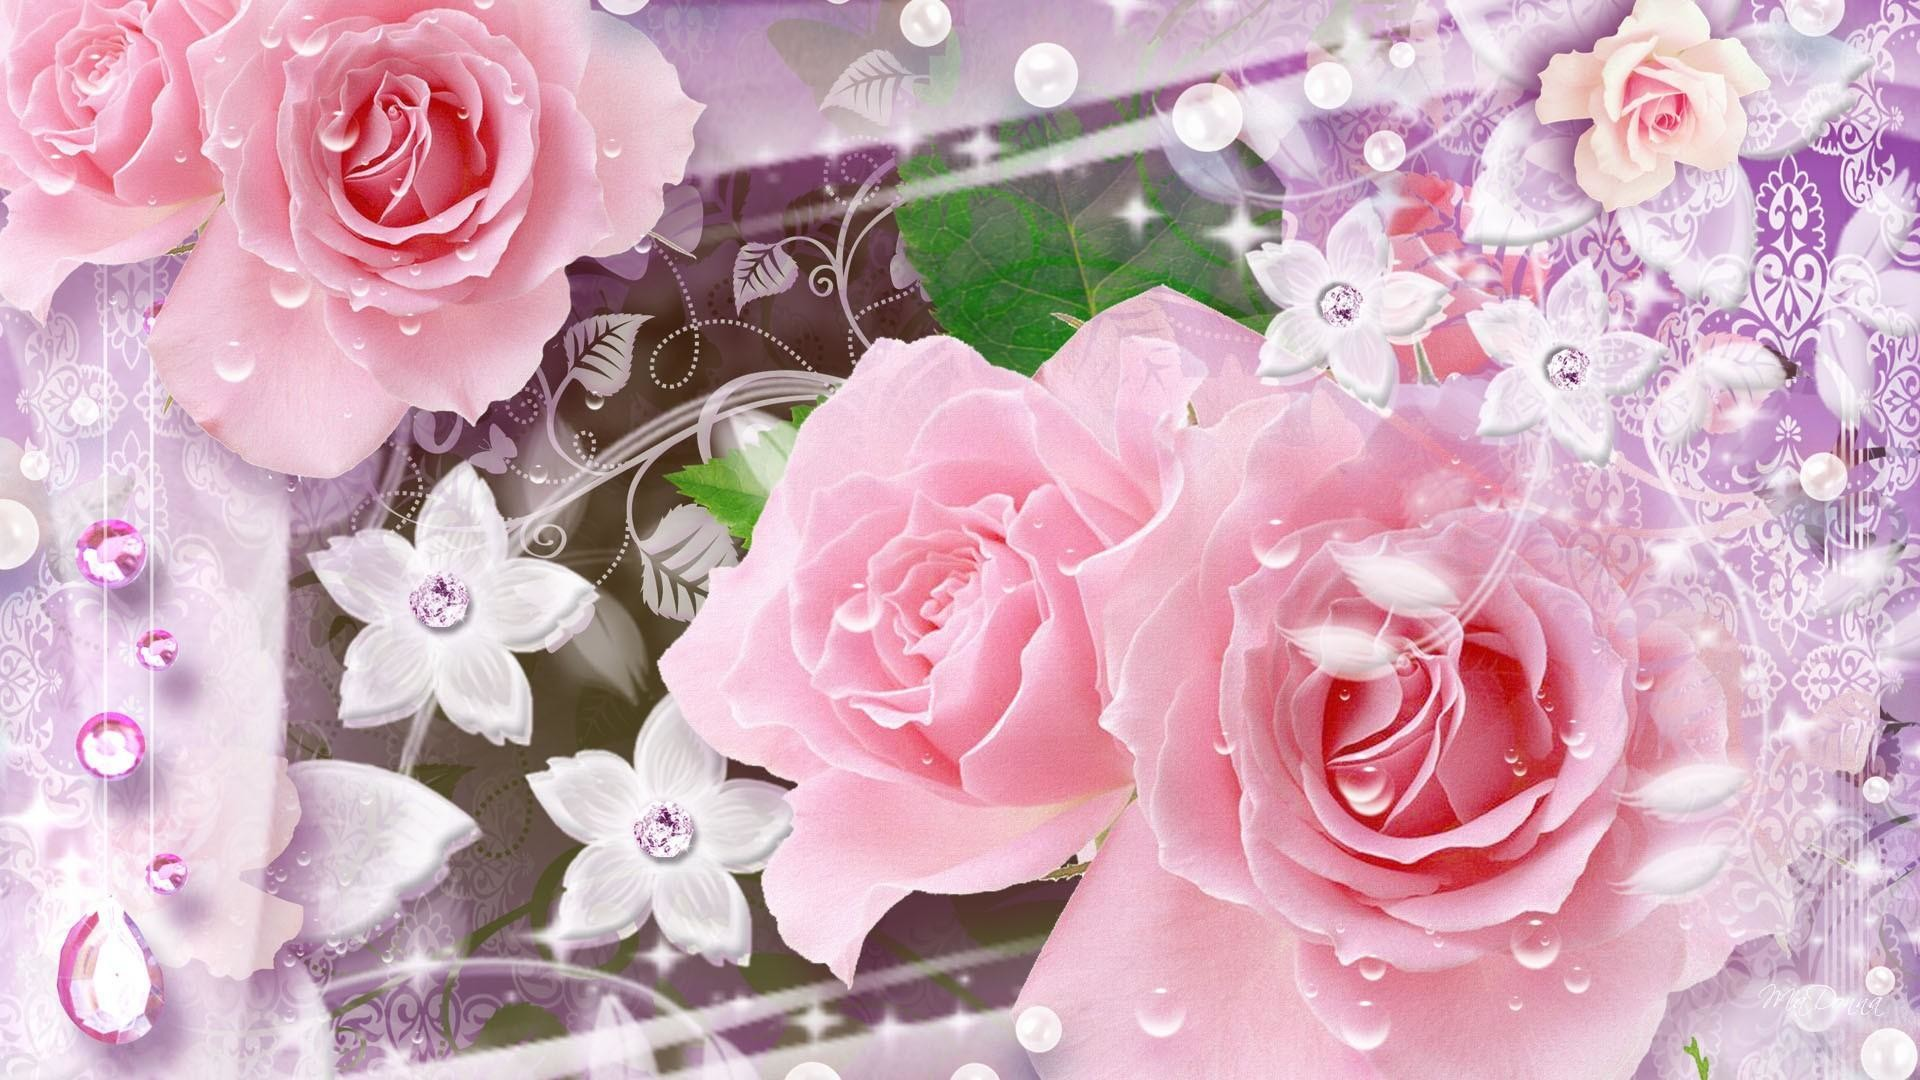 Res: 1920x1080, Love Of Pink